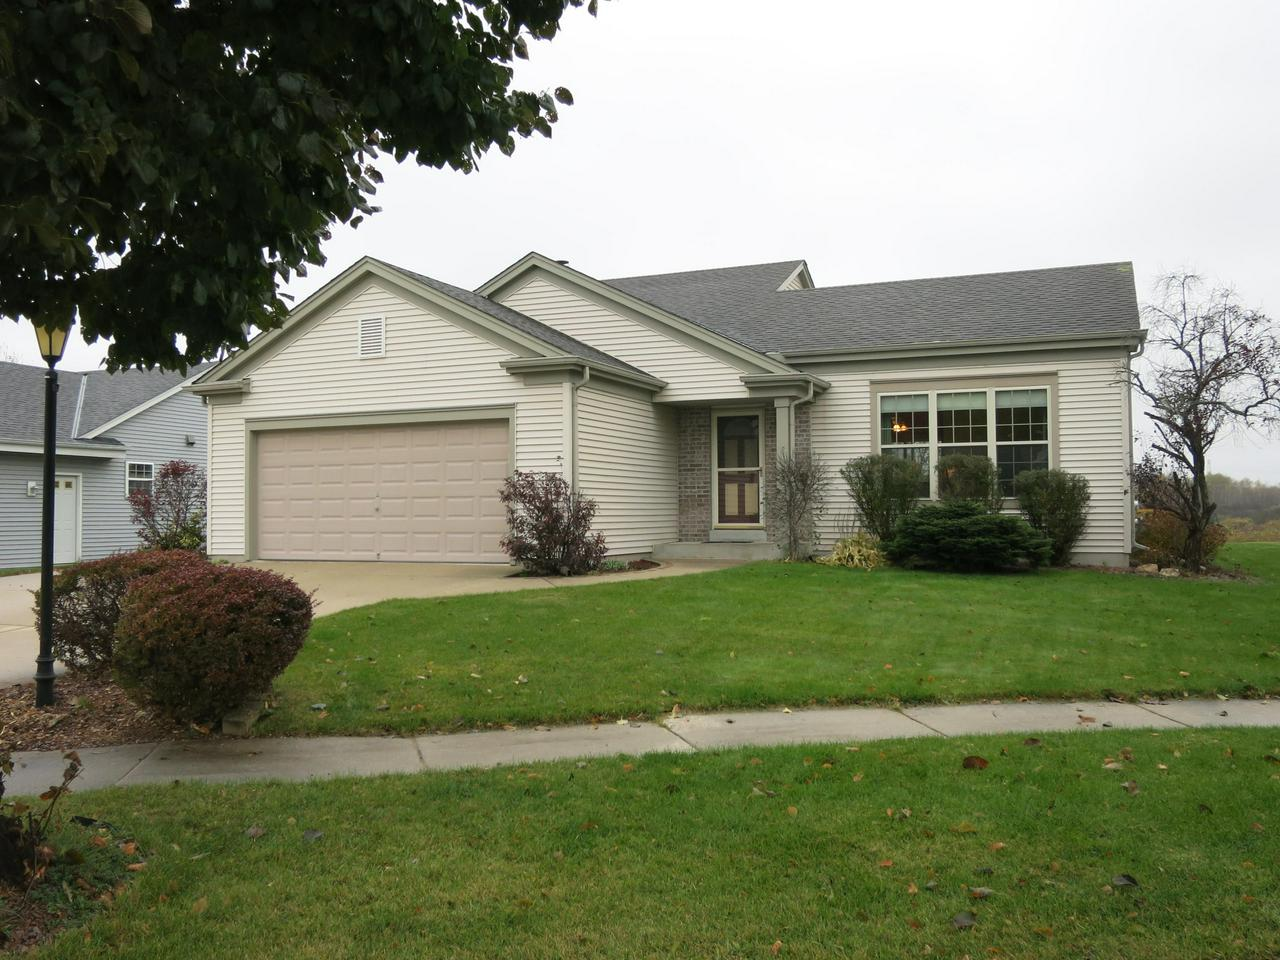 Situated on a quiet cul-de-sac, this spacious home has much to offer. There is new carpeting in the bright & cheery living room, a spacious kitchen with lots of cabinets and a dinette with a patio door leading to a large composite deck overlooking a conservancy to the back. The master  bedroom features a walk-in closet and private bath with a jetted tub.  The family room has full sized windows and a gas fireplace to enjoy the cold winter nights to come. The jetted tub in the spa-like room will provide wonderful relaxation. This great home is now ready for a new owner. Don't wait. Make an appointment today!